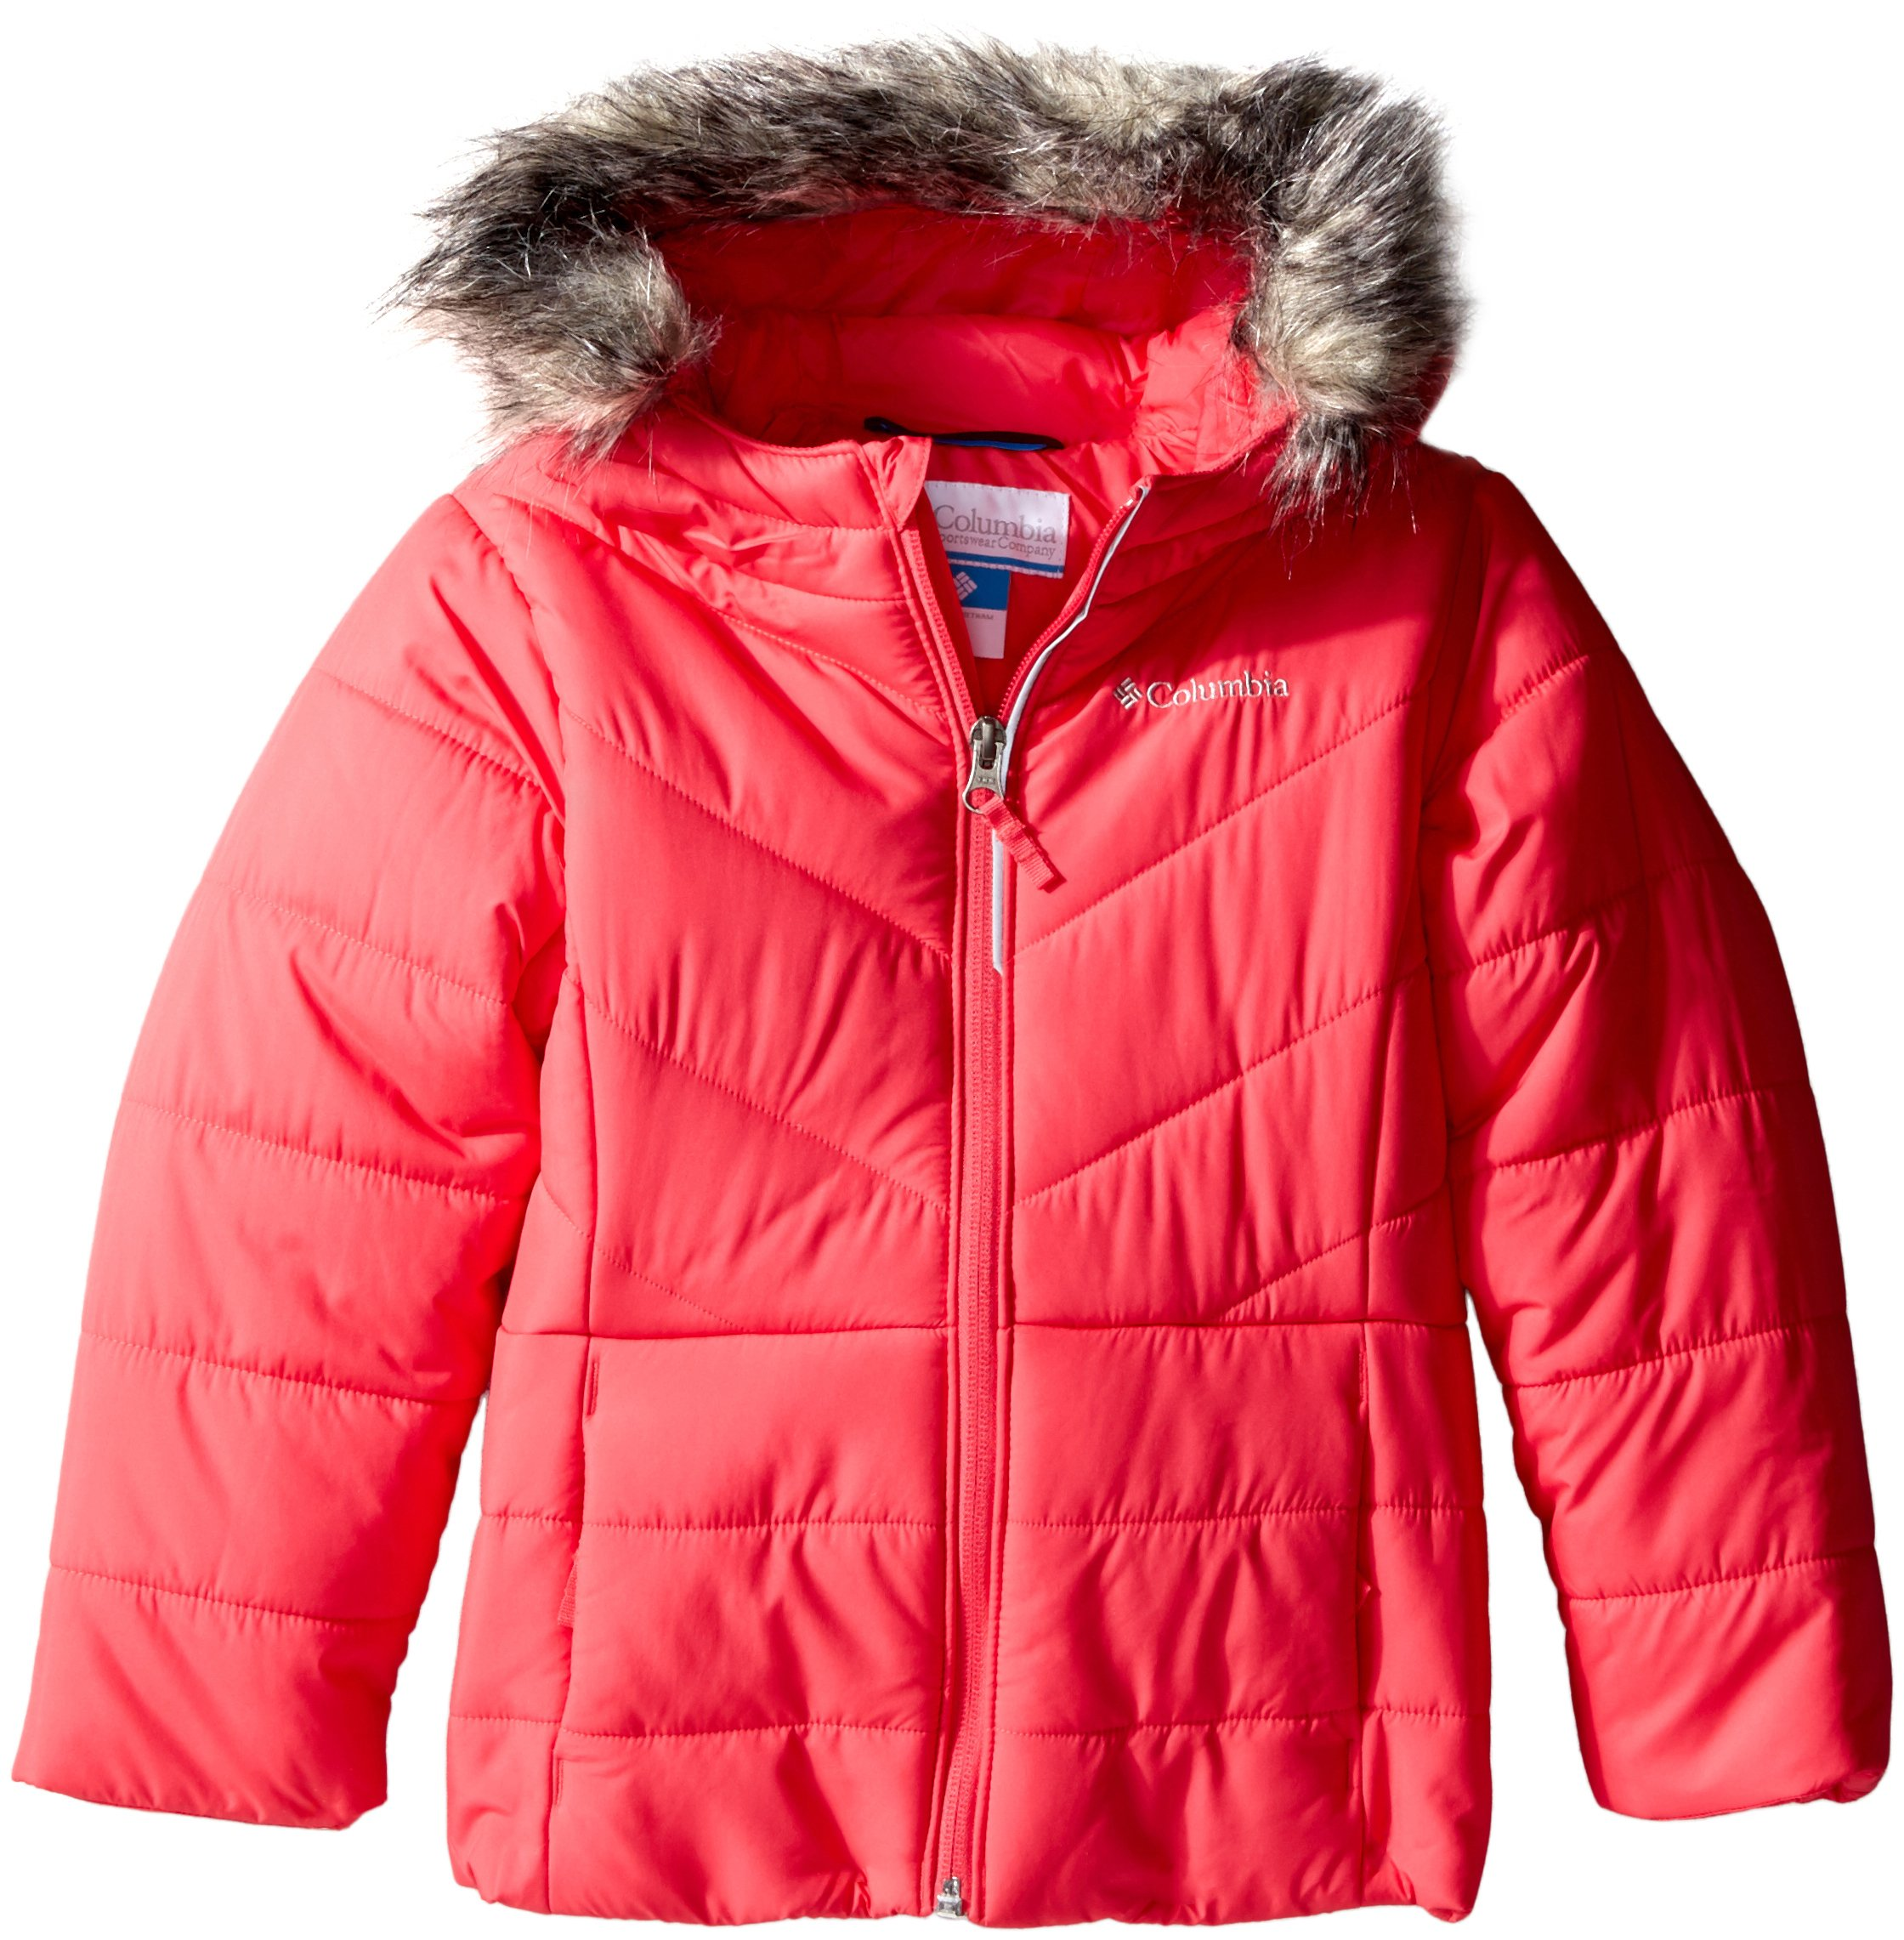 Columbia Big Girls' Katelyn Crest Jacket, Punch Pink, Medium (10/12)